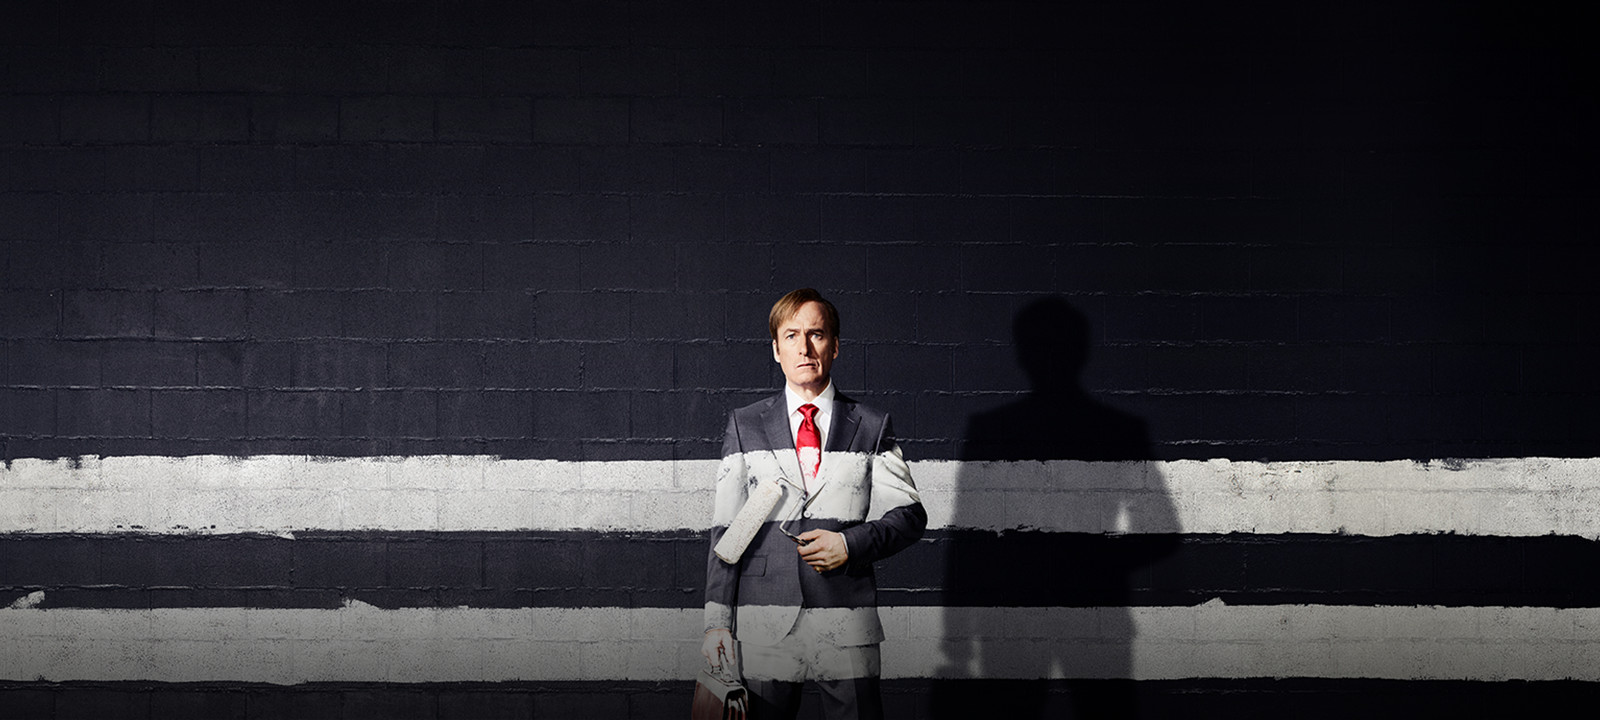 Better call saul season episode and cast information amc for Better call saul